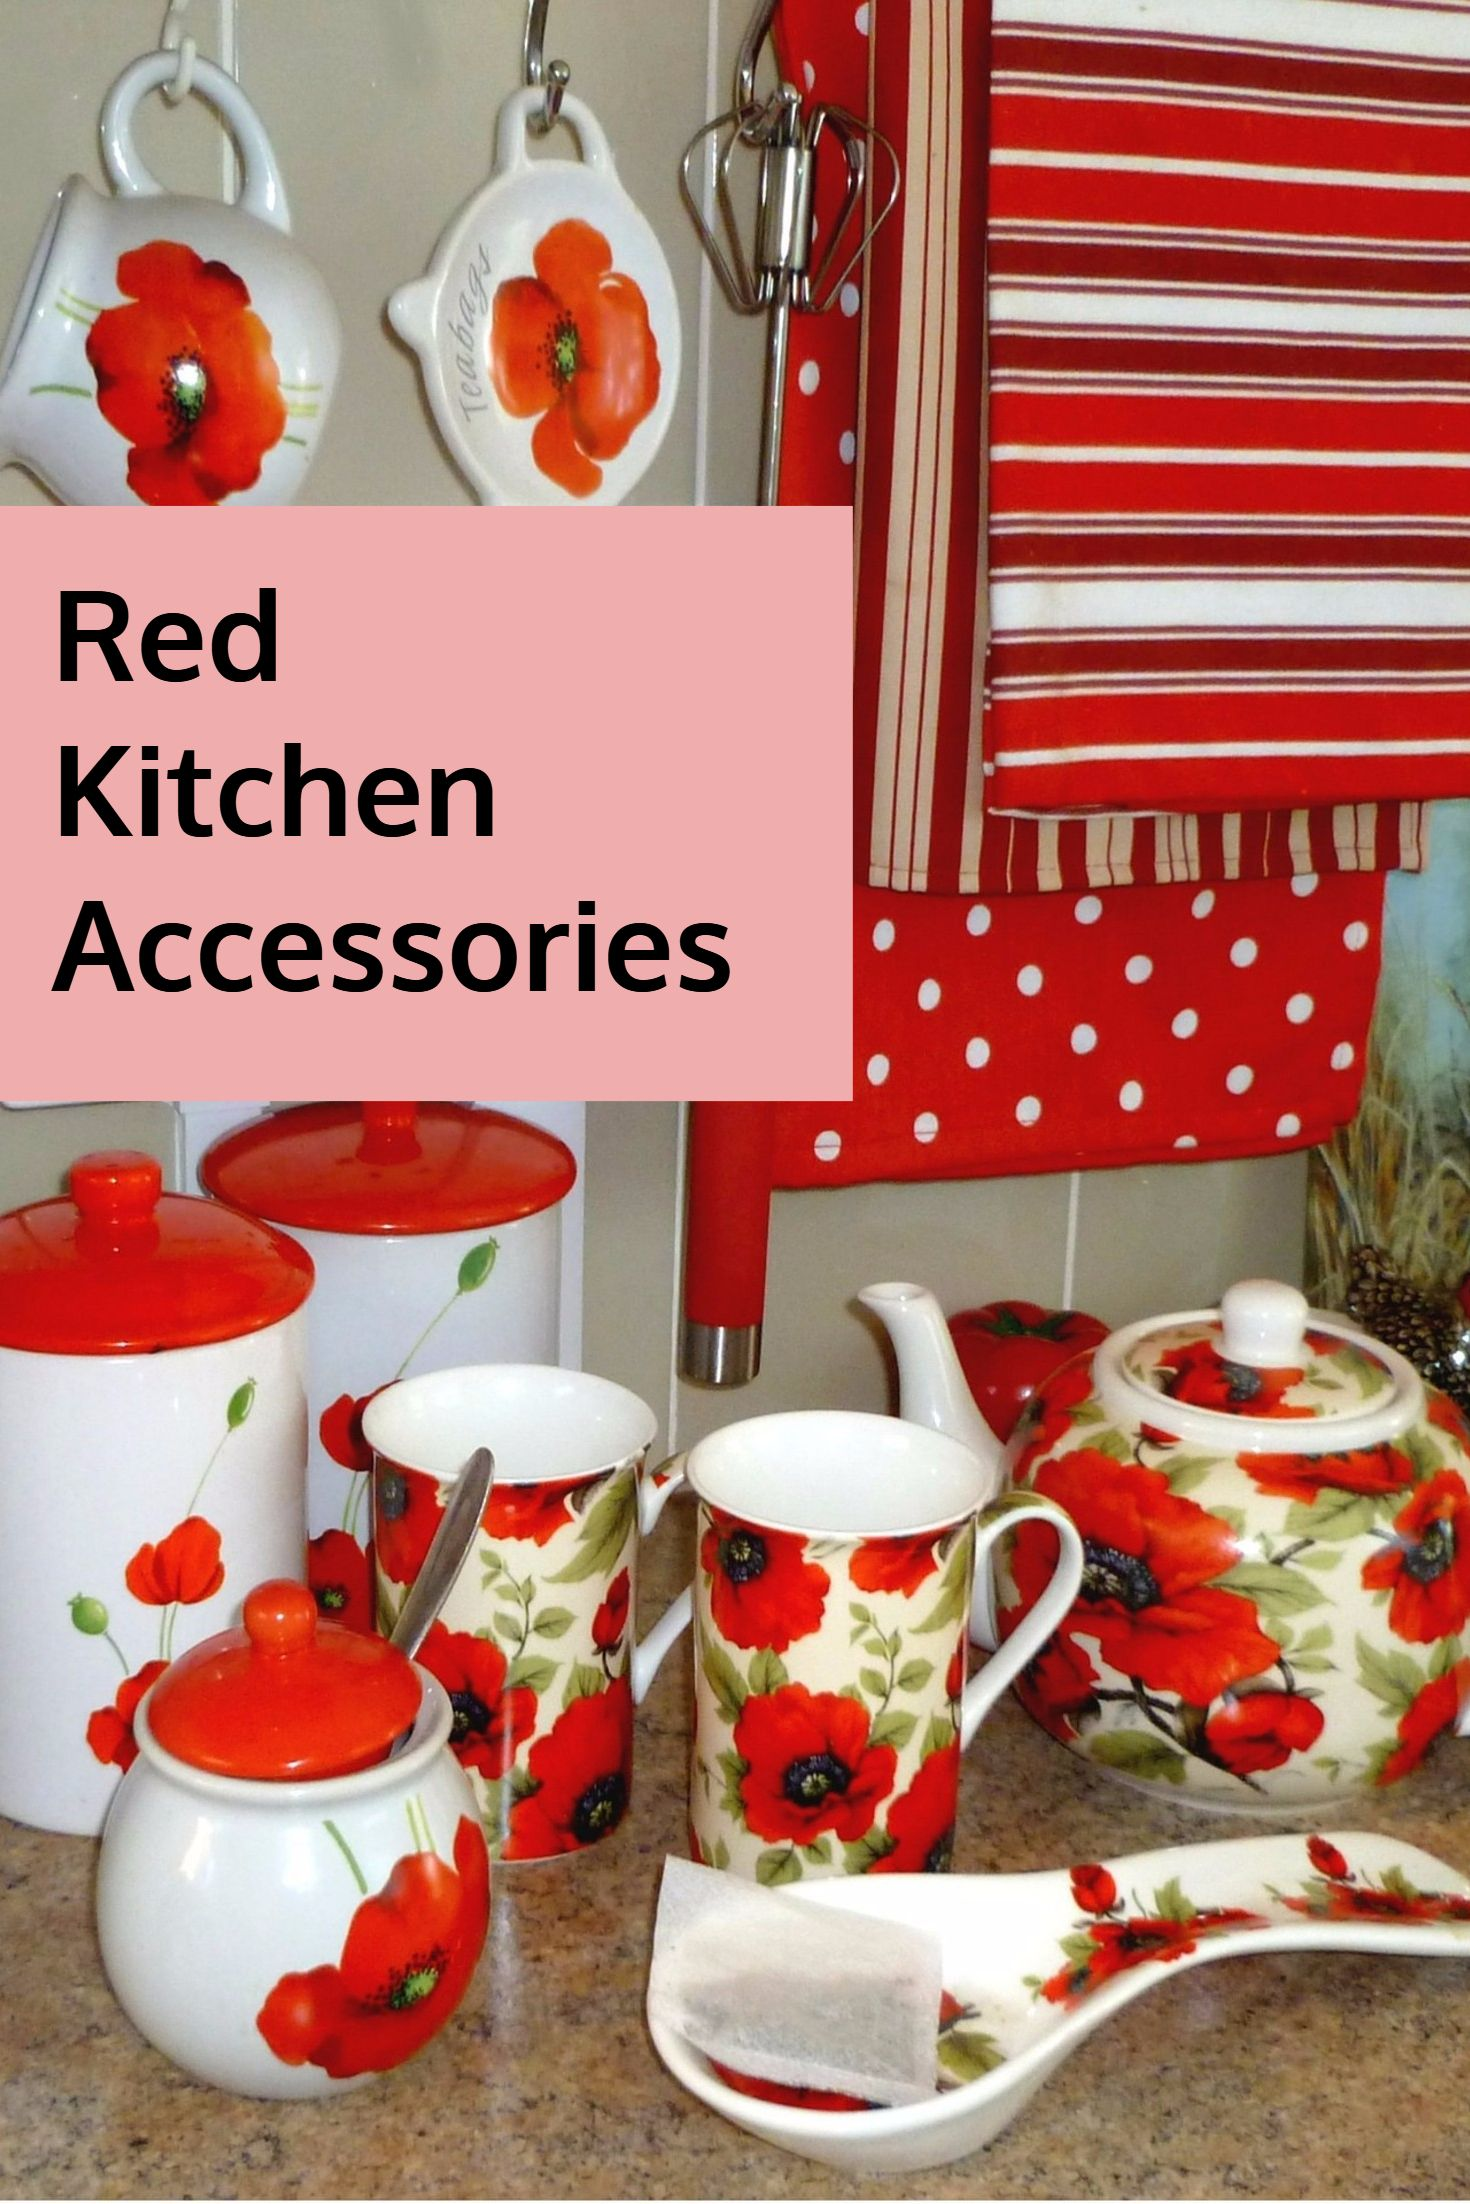 Red Kitchen Accessories. Red Poppy Themed Kitchen Accessories.